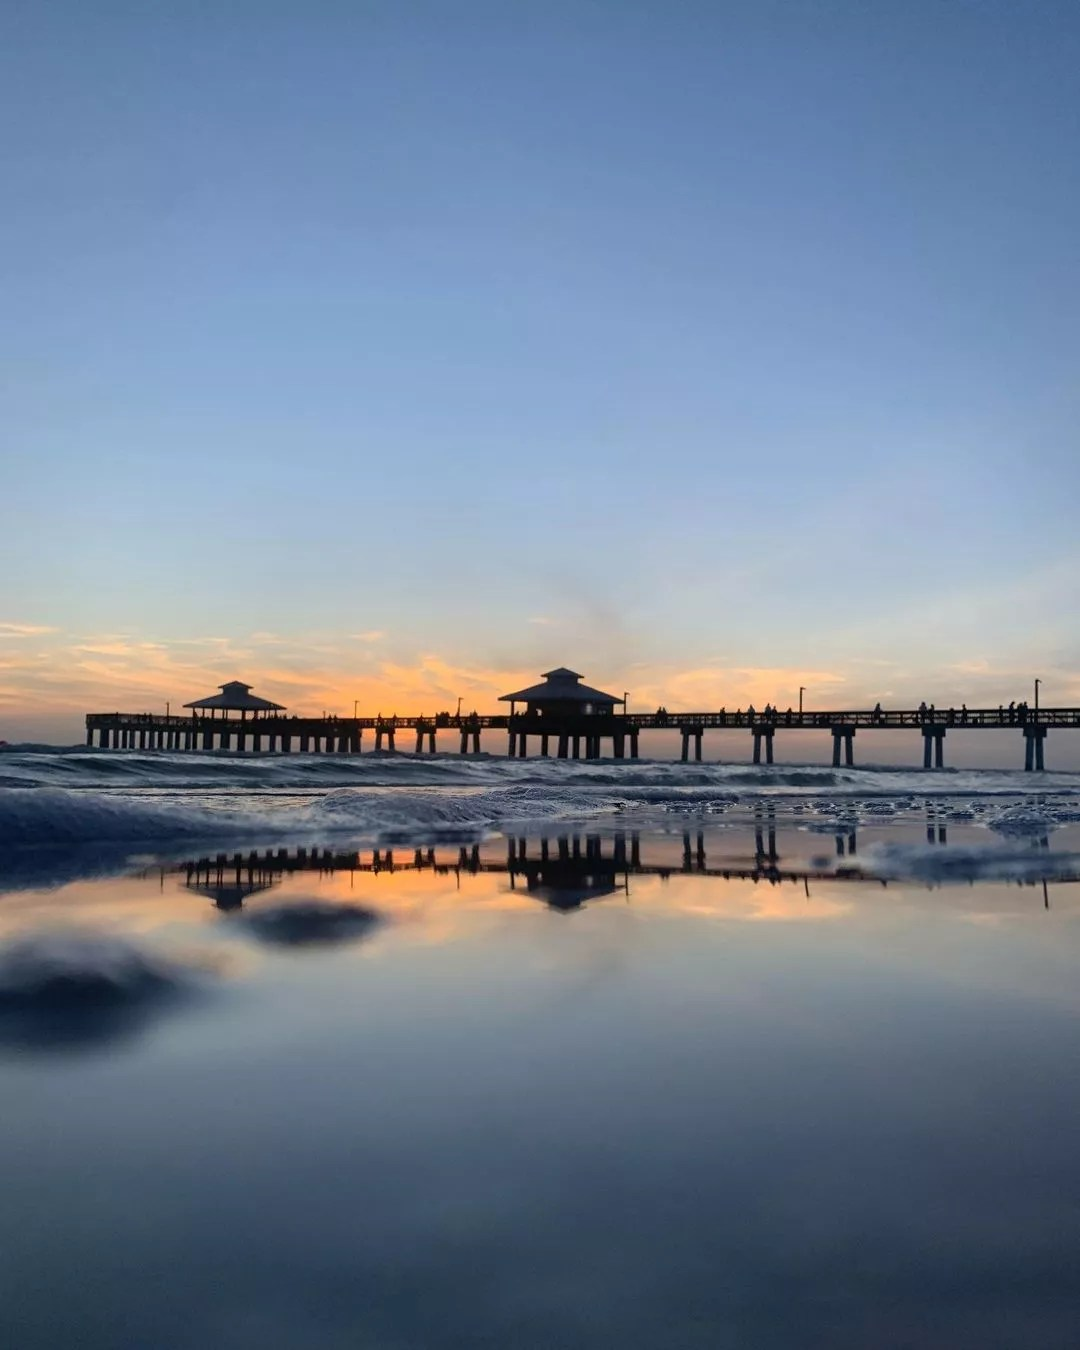 Sunset Photo of the Pier at Fort Myers Beach. Photo by Instagram user @ocana.photography